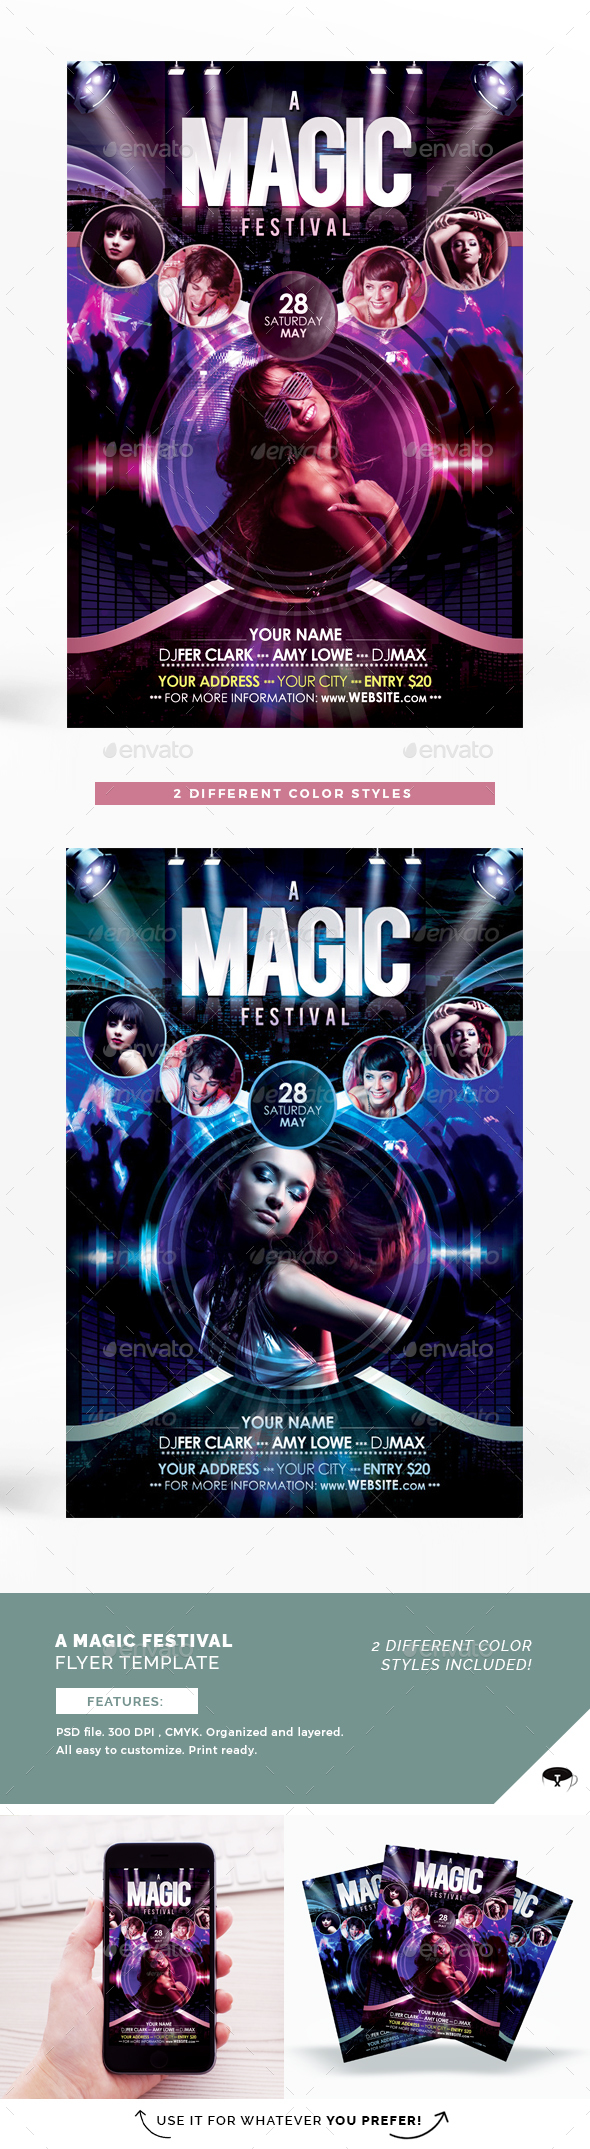 A Magic Festival Flyer Template - Flyers Print Templates